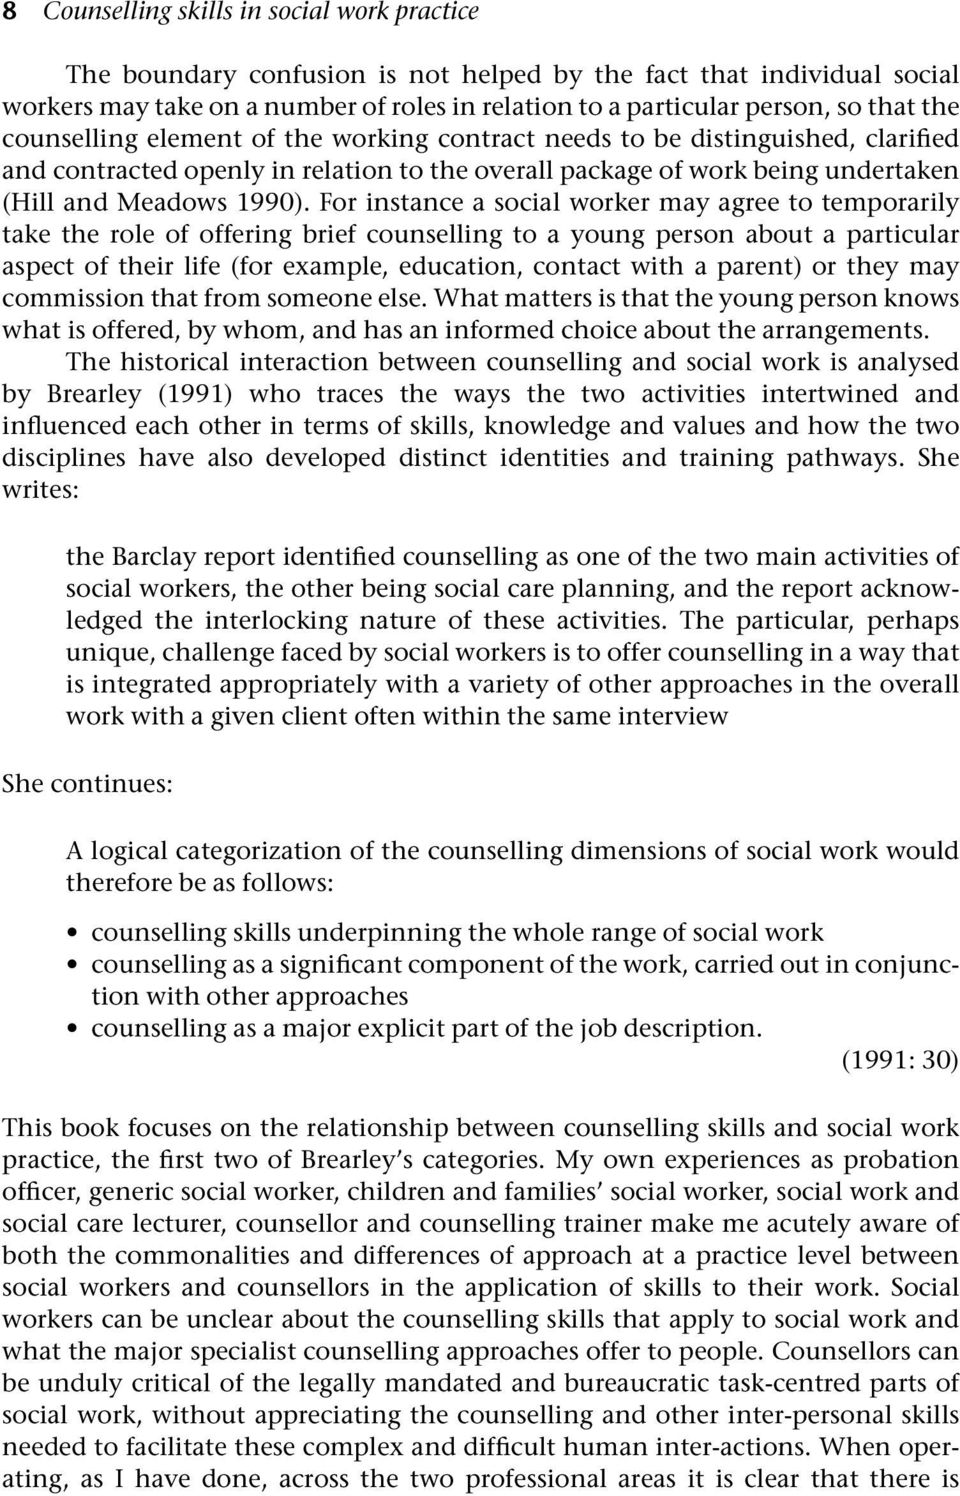 For instance a social worker may agree to temporarily take the role of offering brief counselling to a young person about a particular aspect of their life (for example, education, contact with a